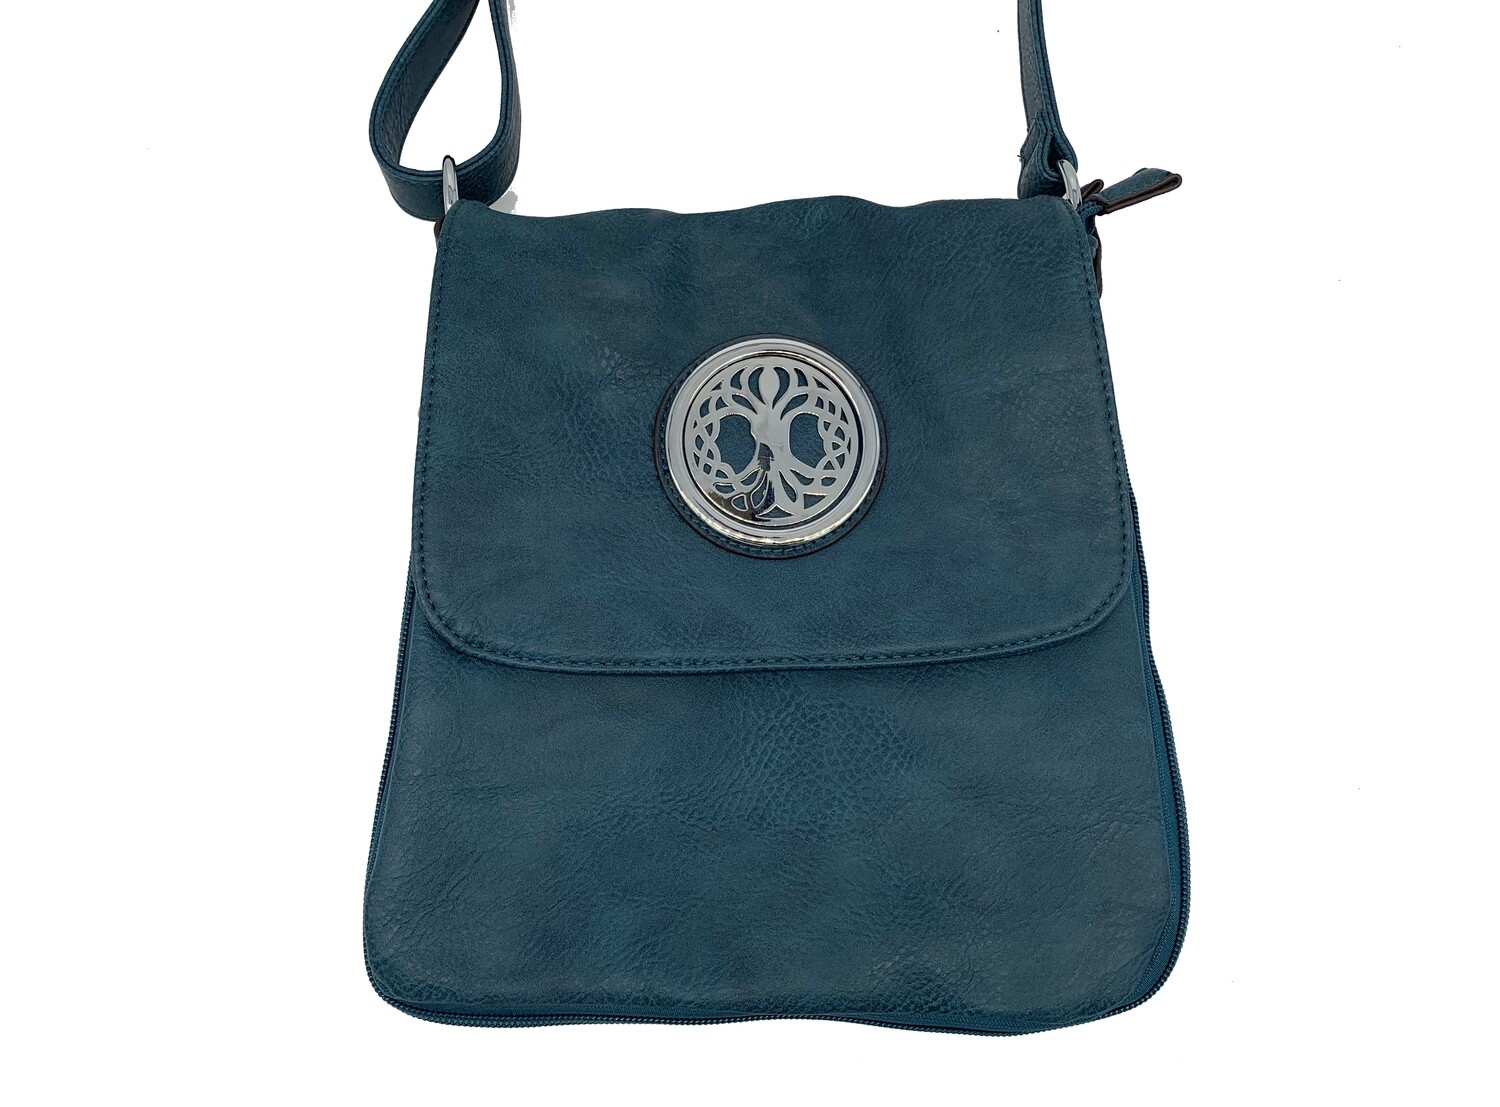 503 Expandale Zip Around Bag  teal